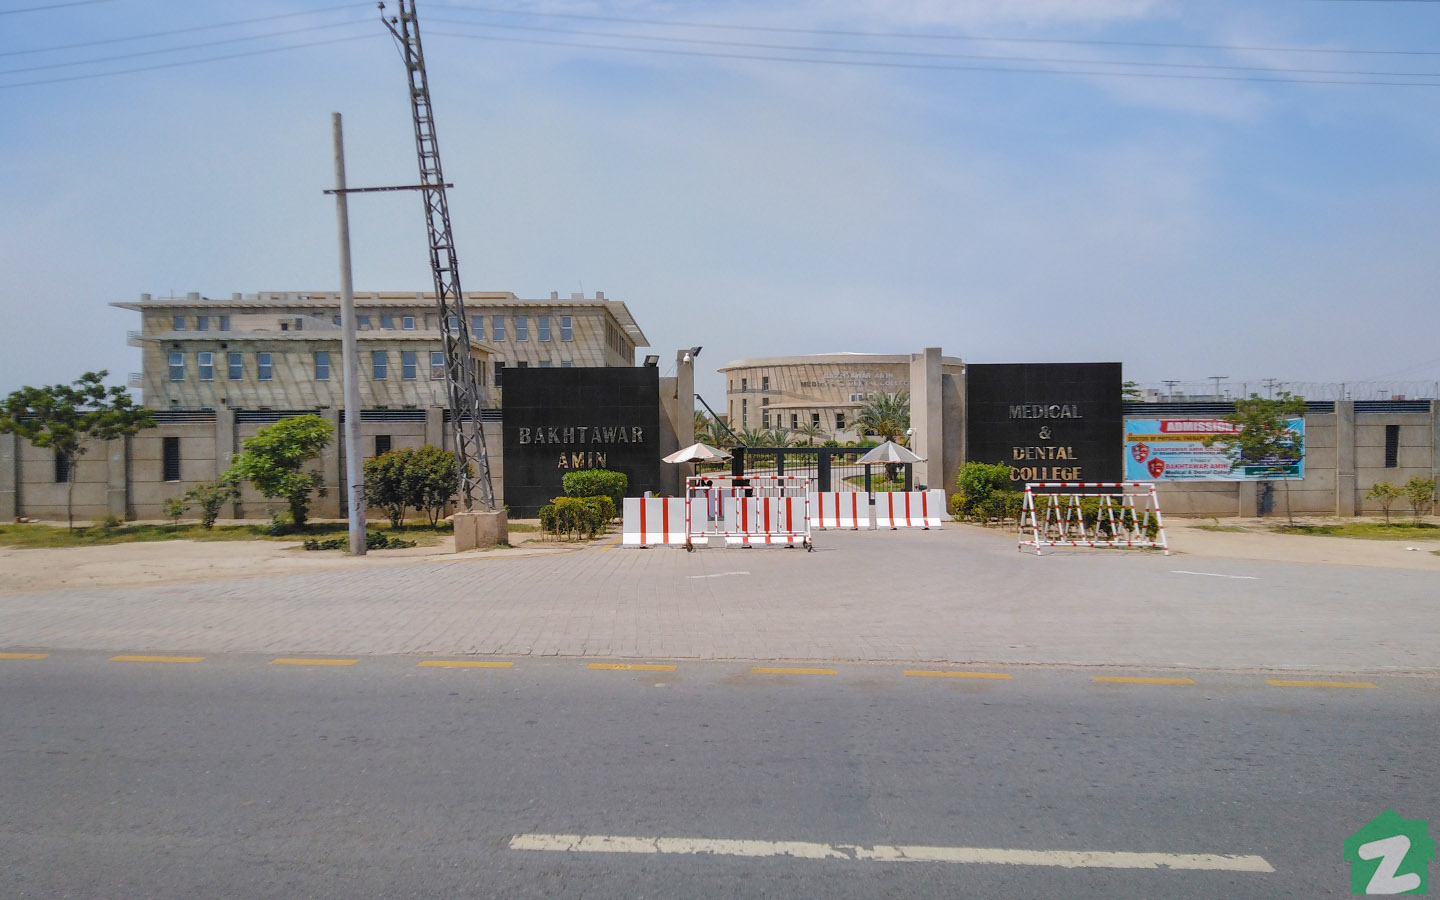 hospital inear Royal Orchard Multan